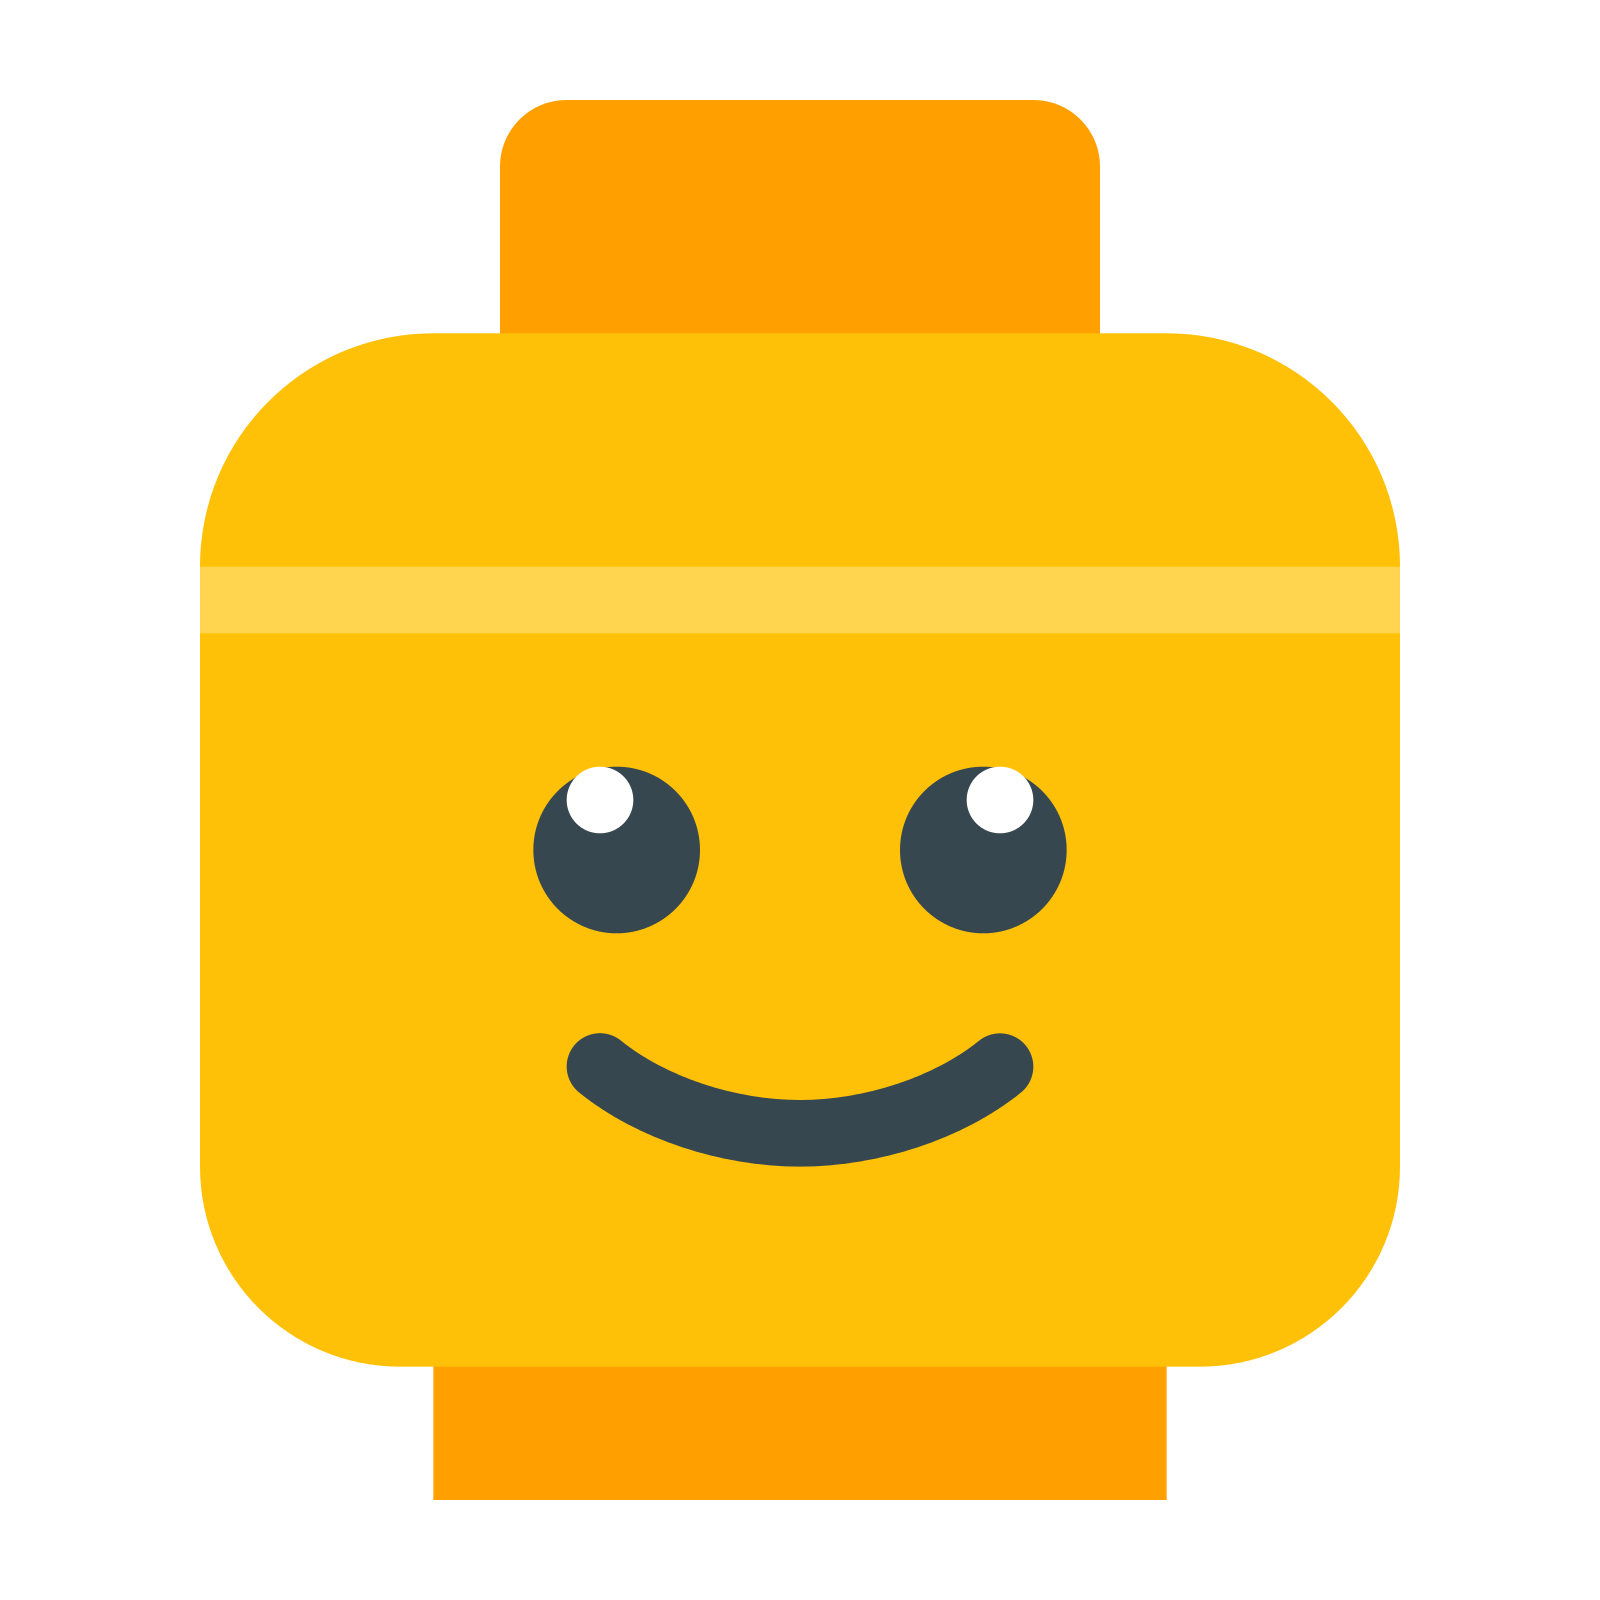 Head Lego Png Pictures image #46618